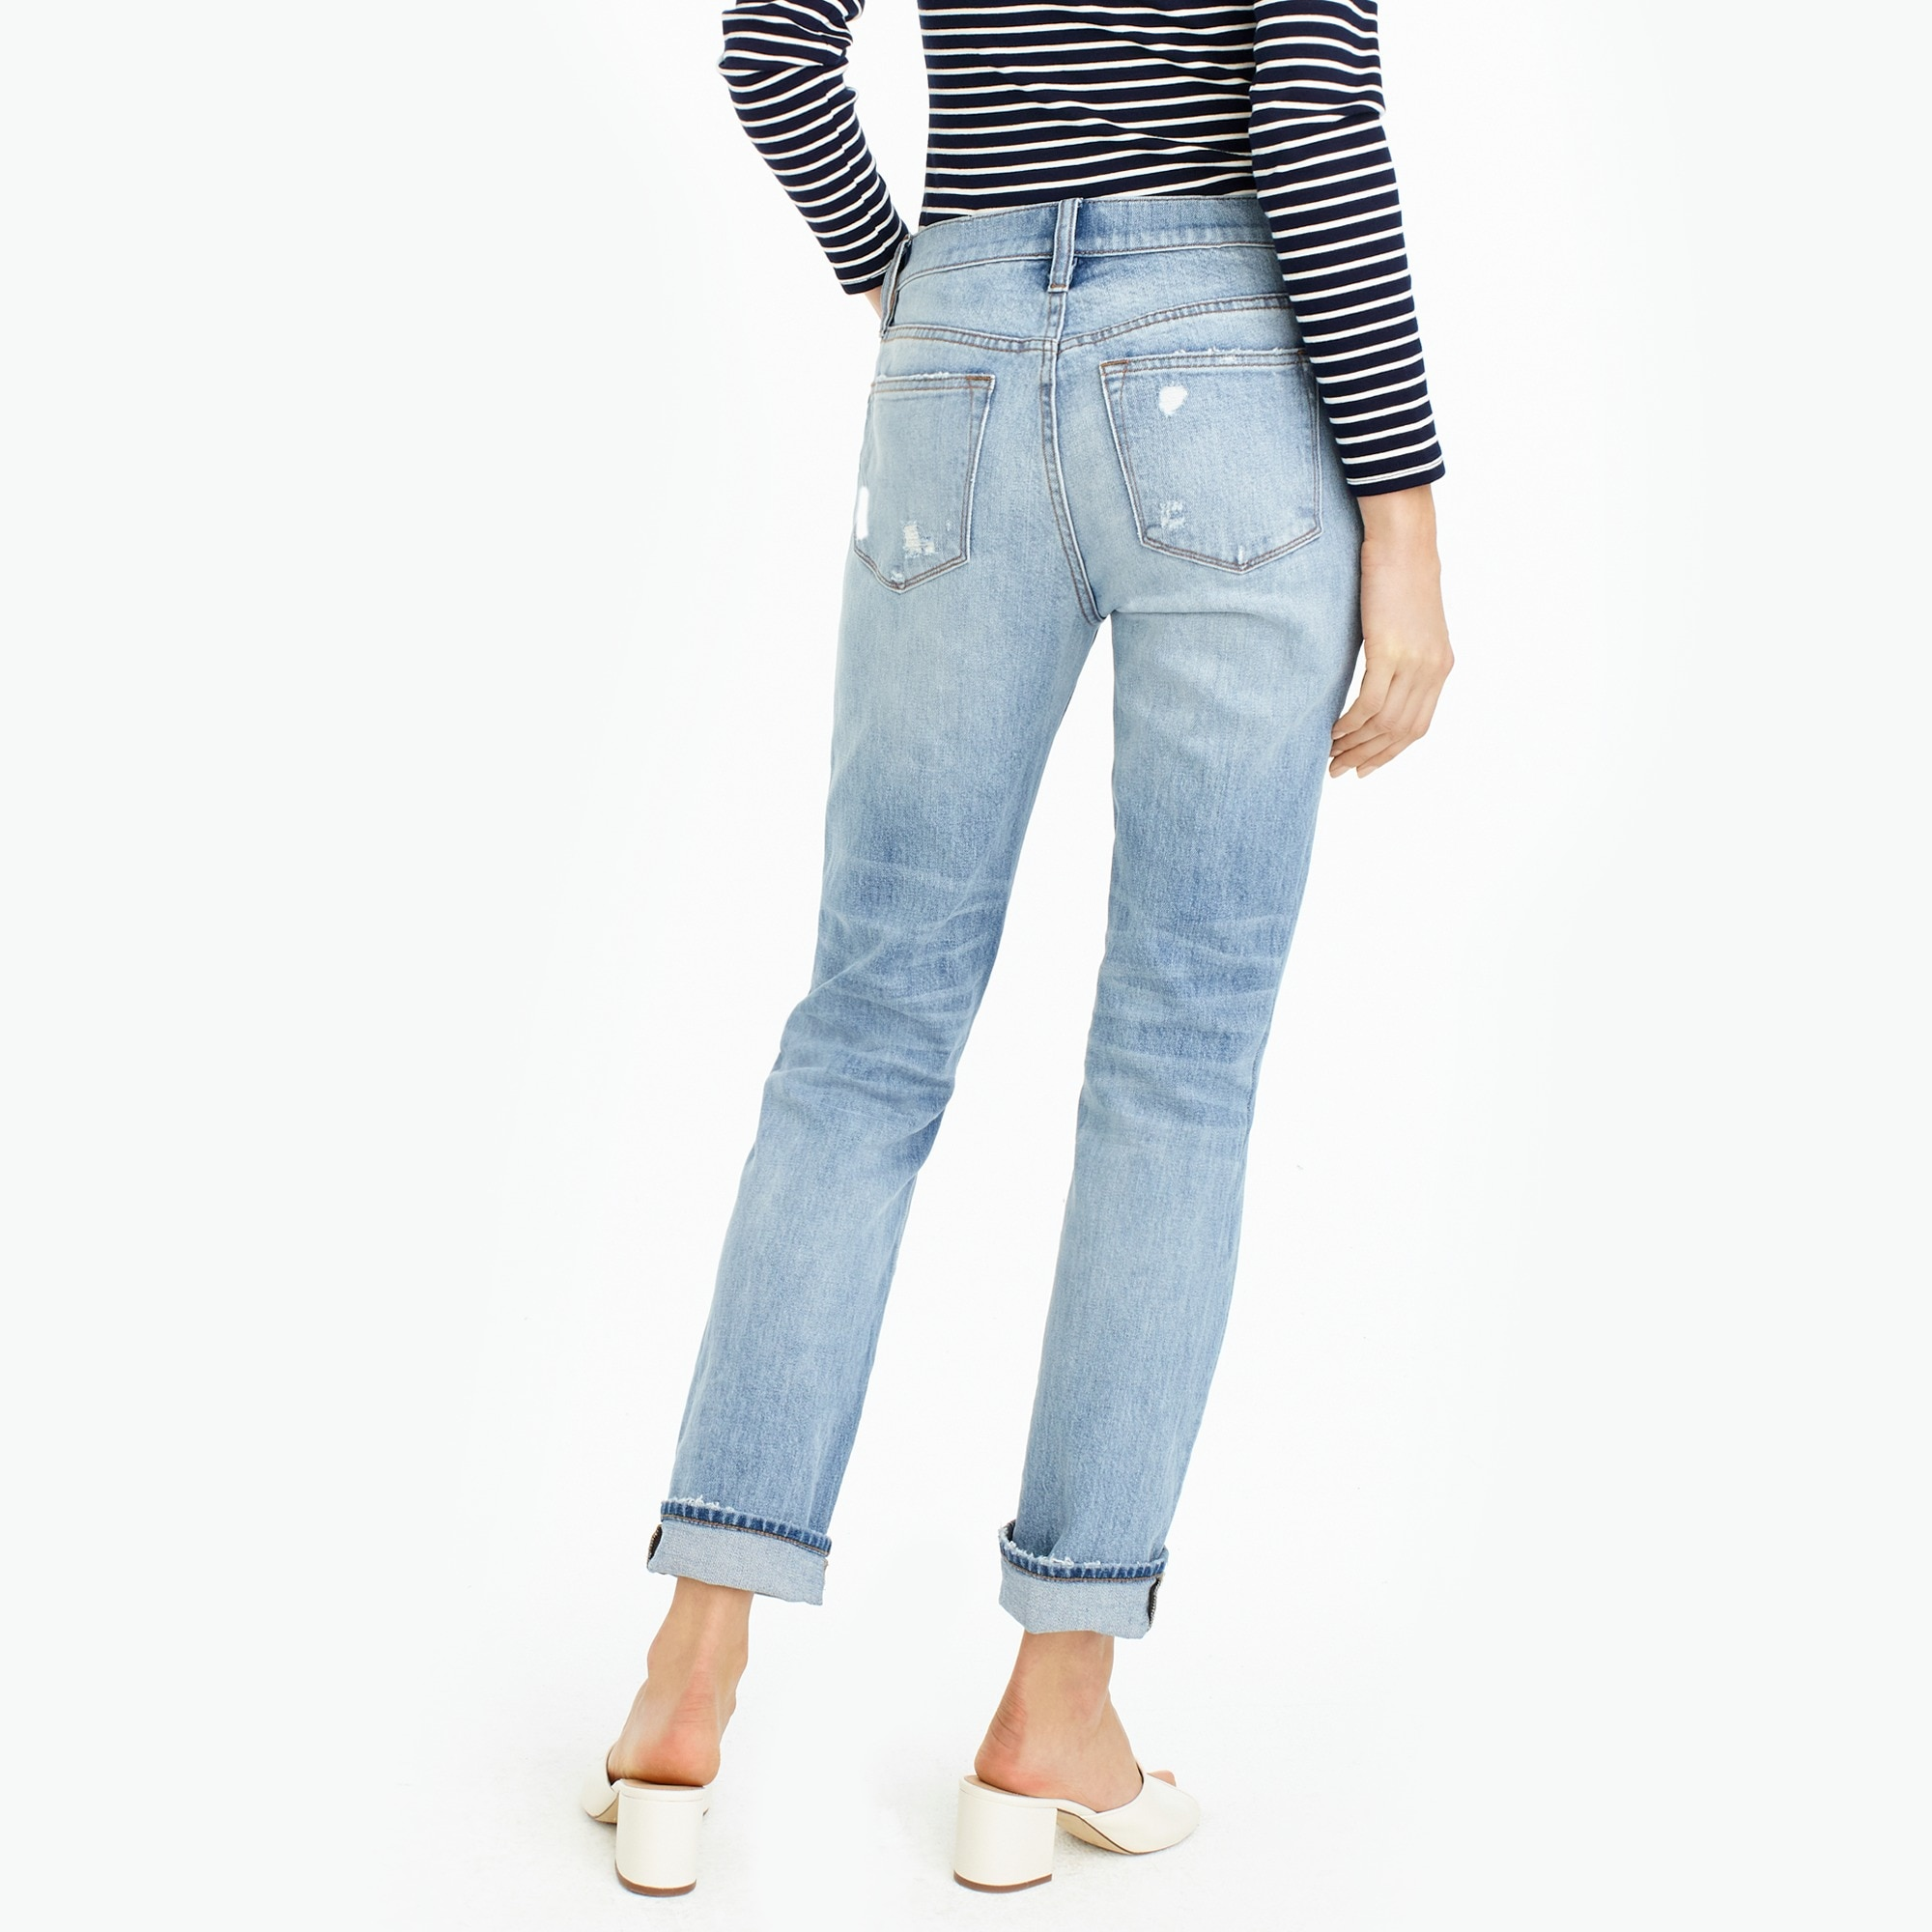 Slim boyfriend jean in Cedar wash